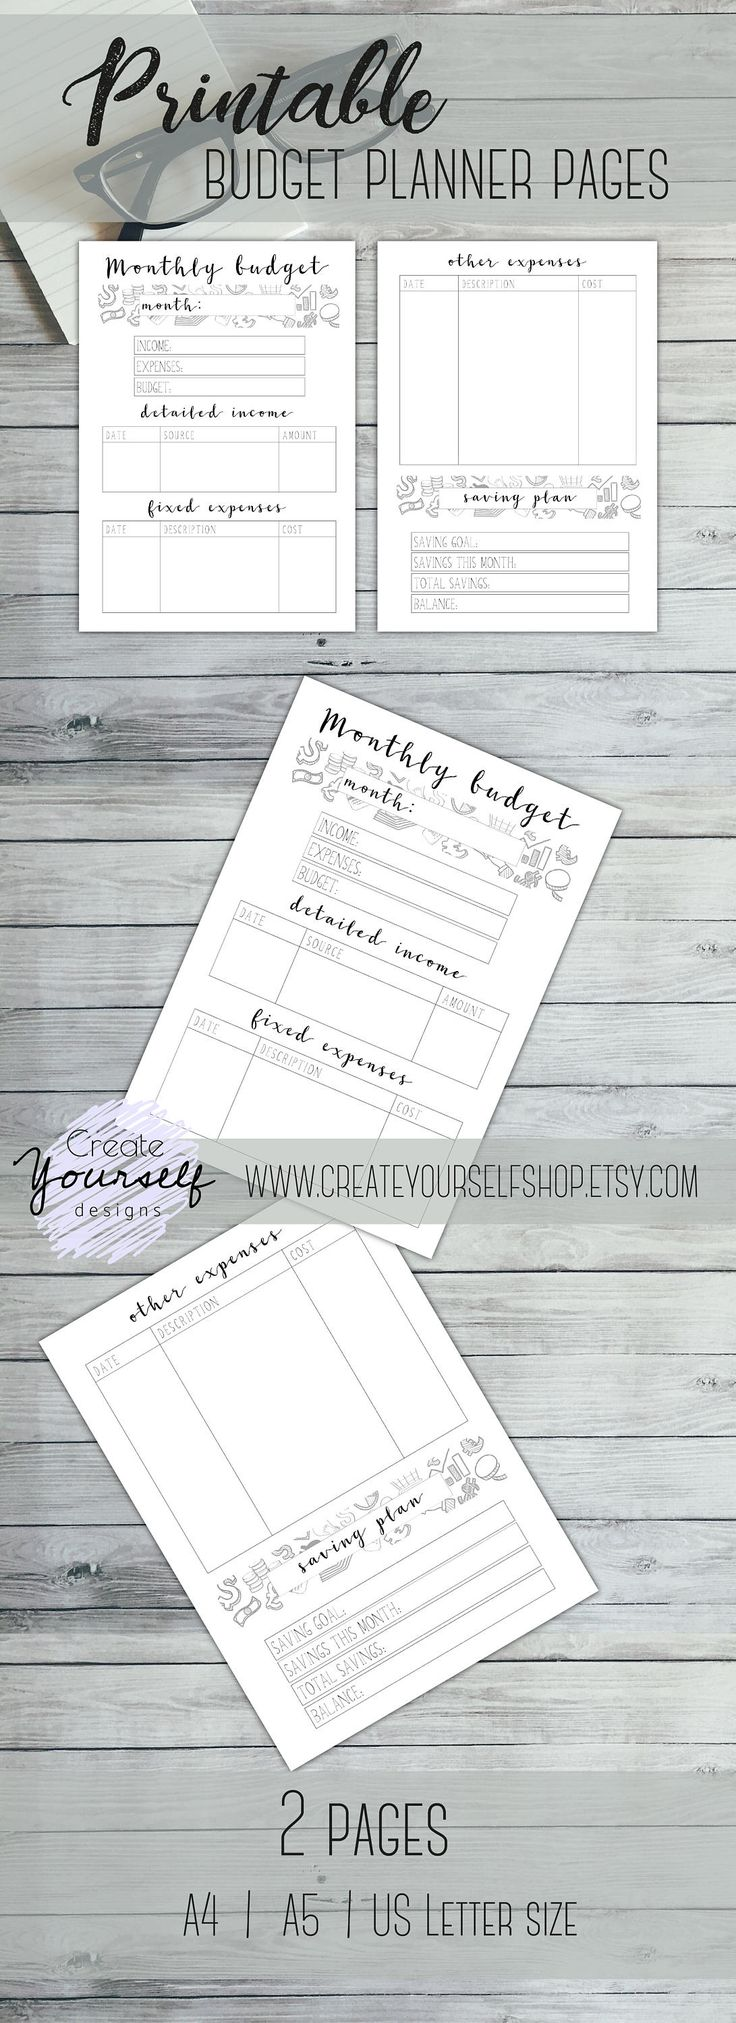 Newest addition! A little help for those who struggle to keep track of their monthly budget or saving goals. Printable budget planner up in my Etsy shop.